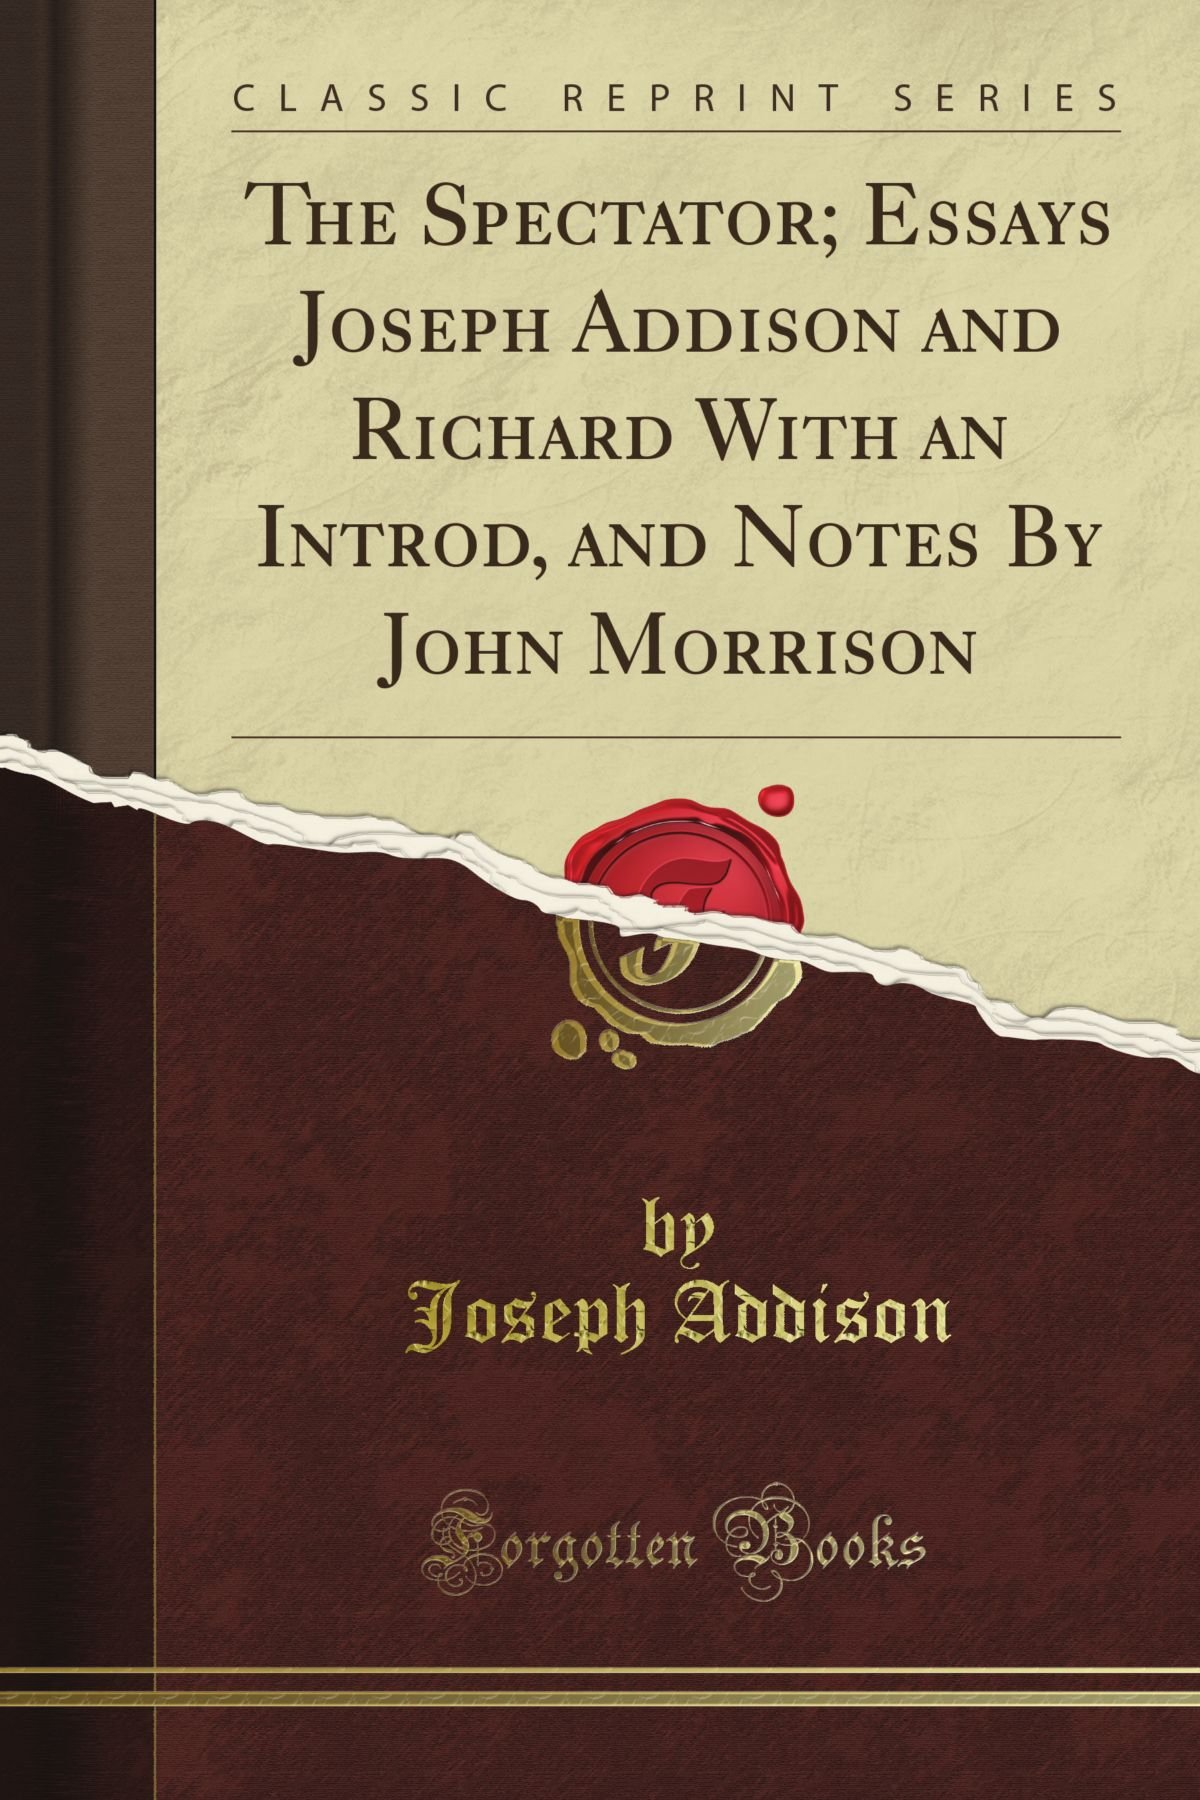 the spectator essays joseph addison and richard with an introd and  the spectator essays joseph addison and richard with an introd and notes  by john morrison classic reprint paperback  july